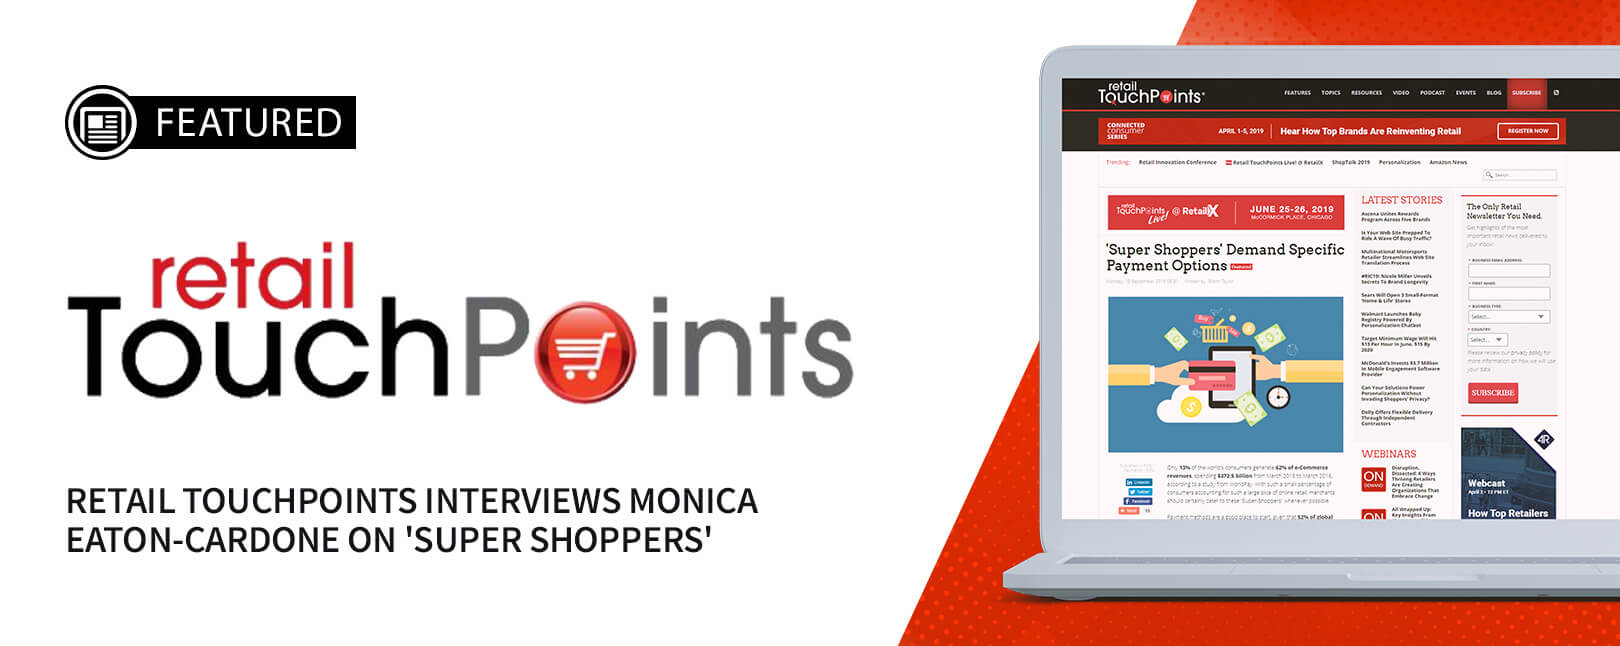 Retail Touchpoints Interviews Monica Eaton-Cardone on 'Super Shoppers